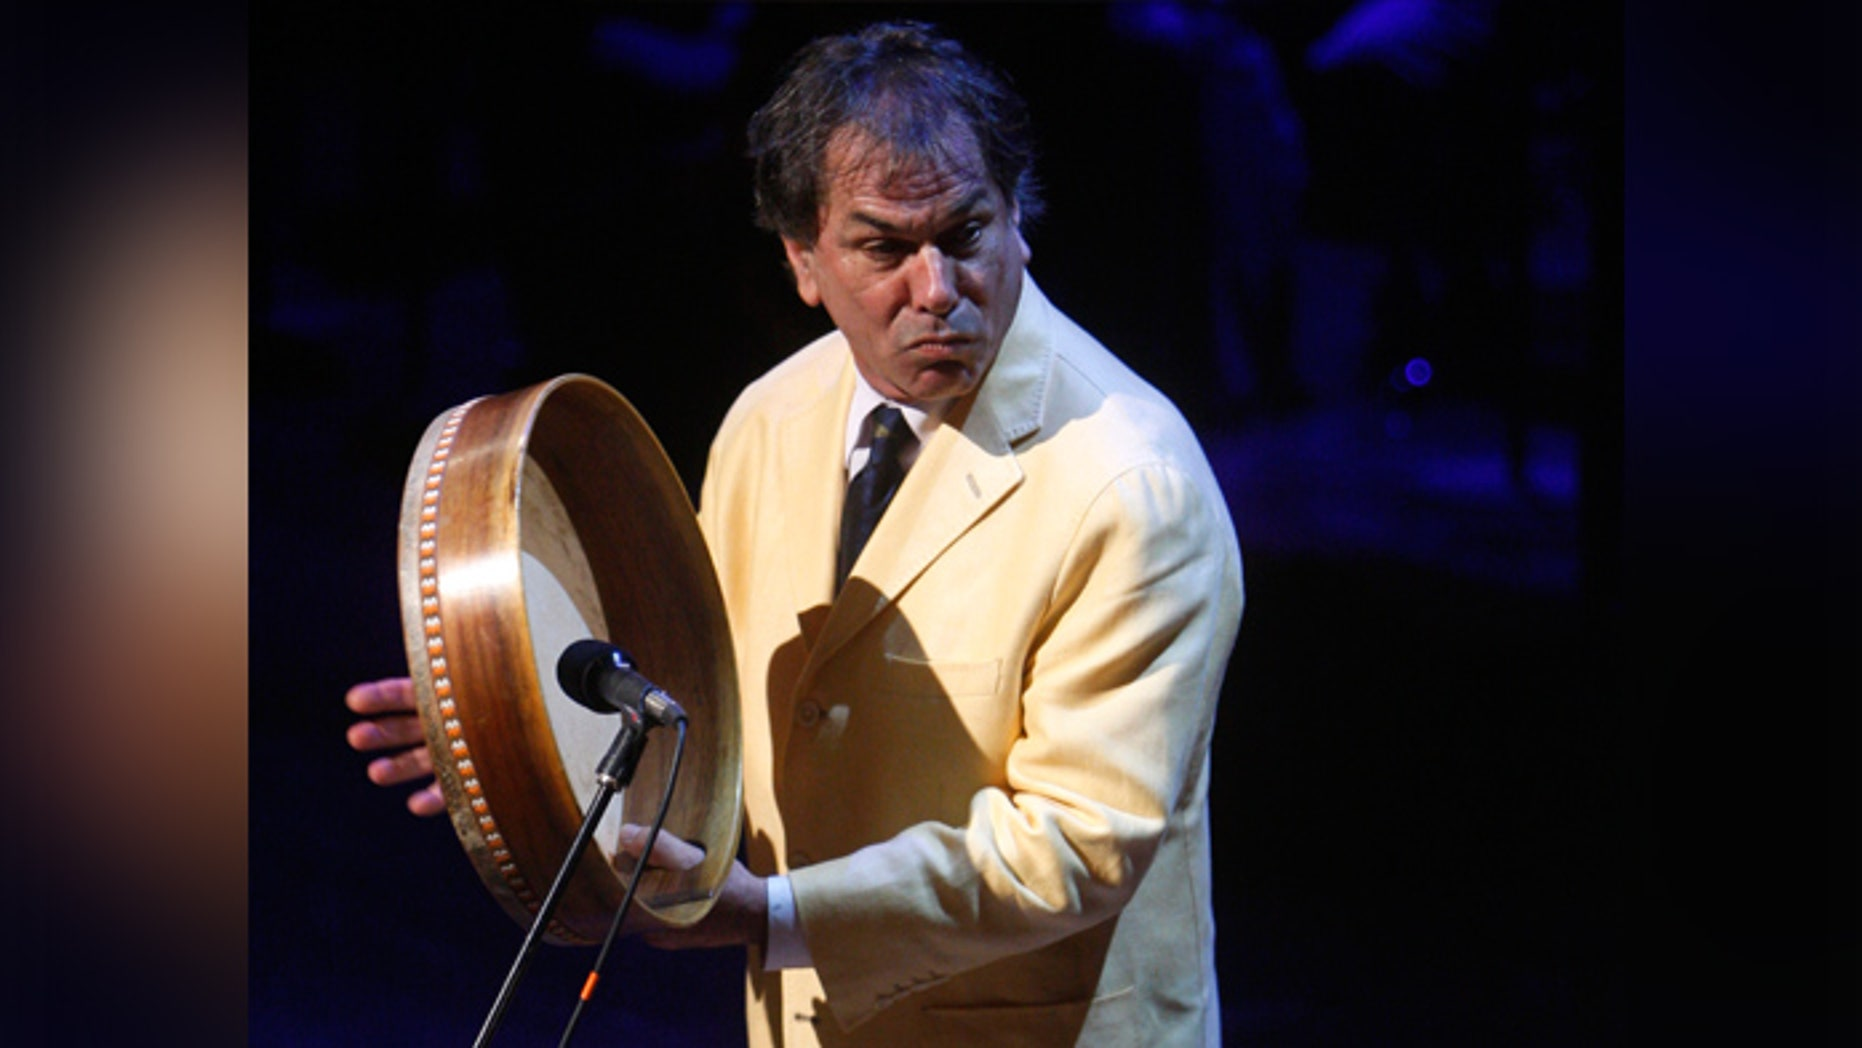 Mickey Hart of the Grateful Dead performing at a memorial service for the late CBS News anchorman Walter Cronkite at the Lincoln Center in New York.